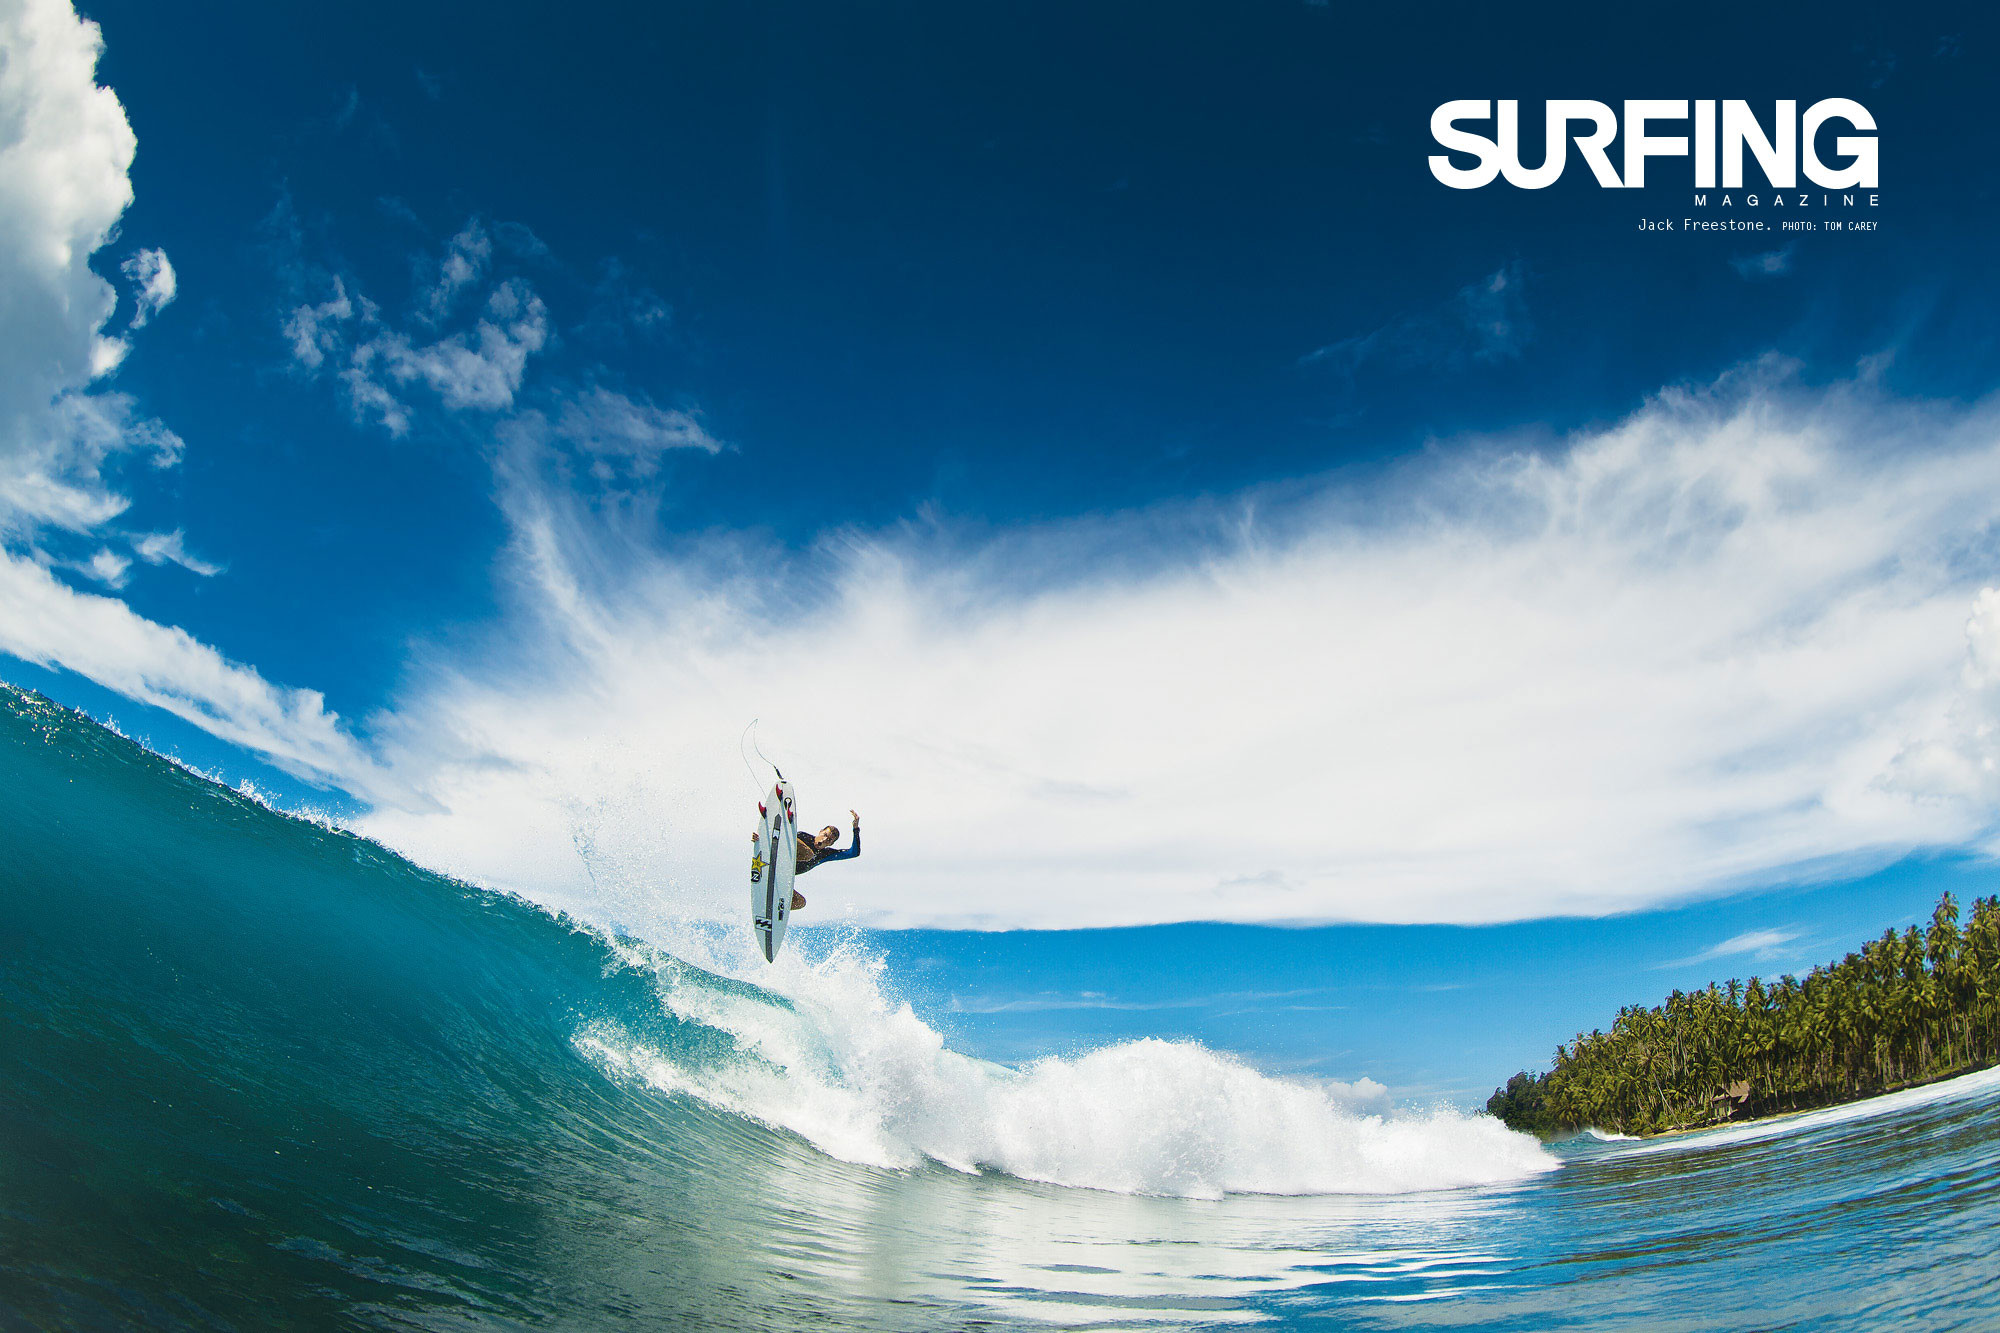 SURFING Wallpaper Issue SURFER Magazine | HD Wallpapers | Pinterest | Surfer  magazine, Hd wallpaper and Wallpaper